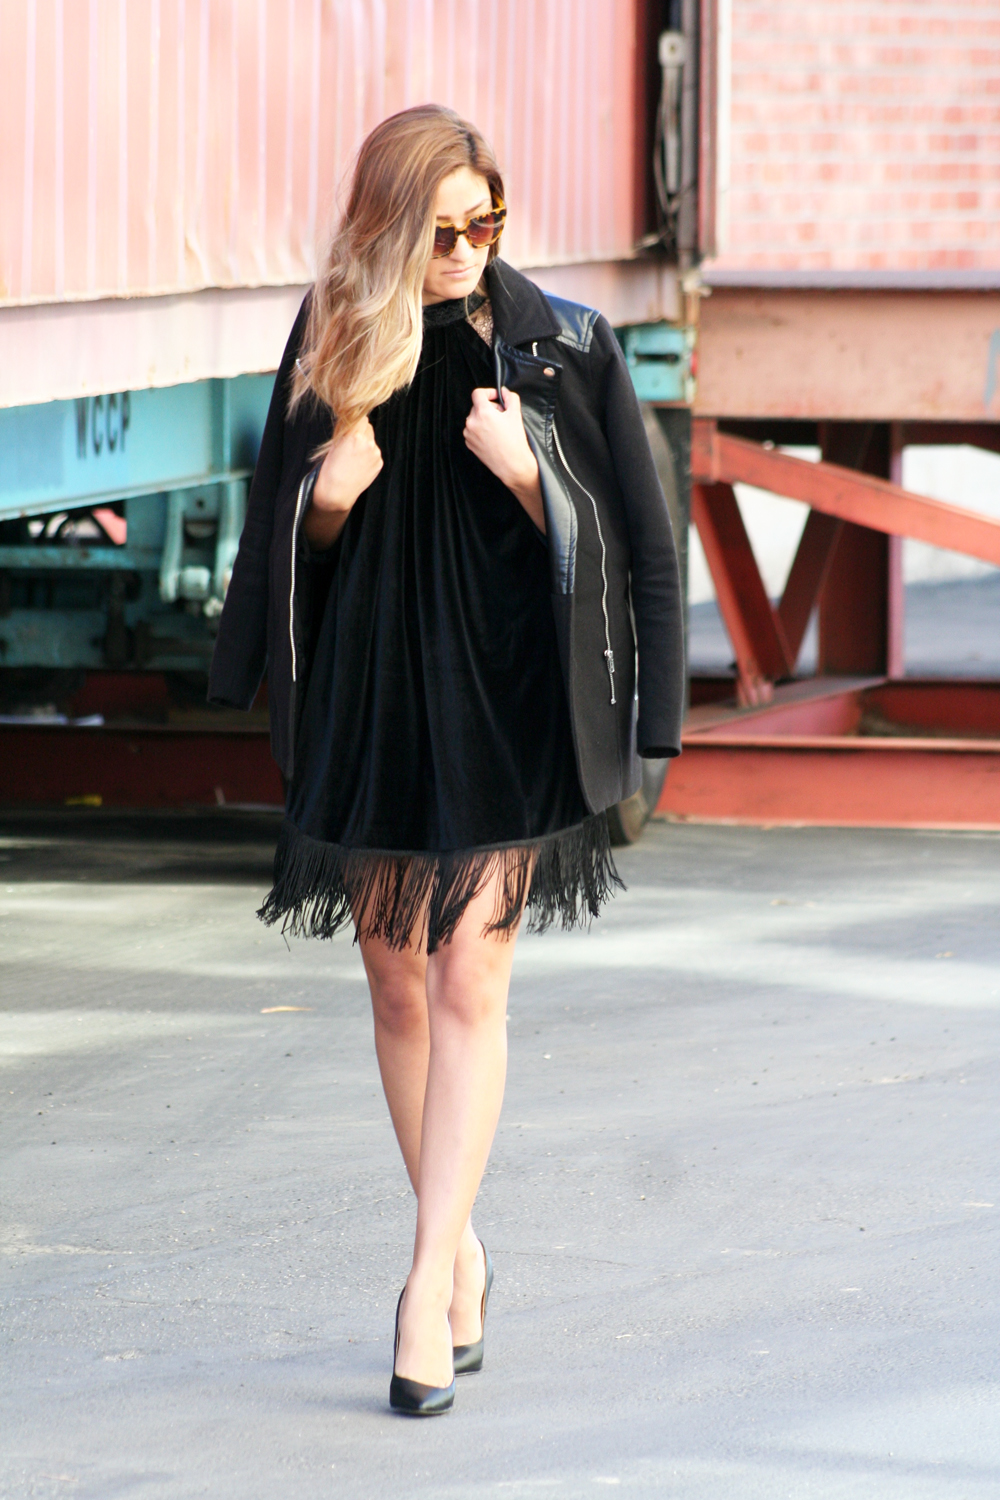 melrodstyle, streetstyle, arj photography, kerold apparel, velvet, fringe, inspiration, outfit, ootd, blogger style, new year's eve dress, holiday dress, dress, lace